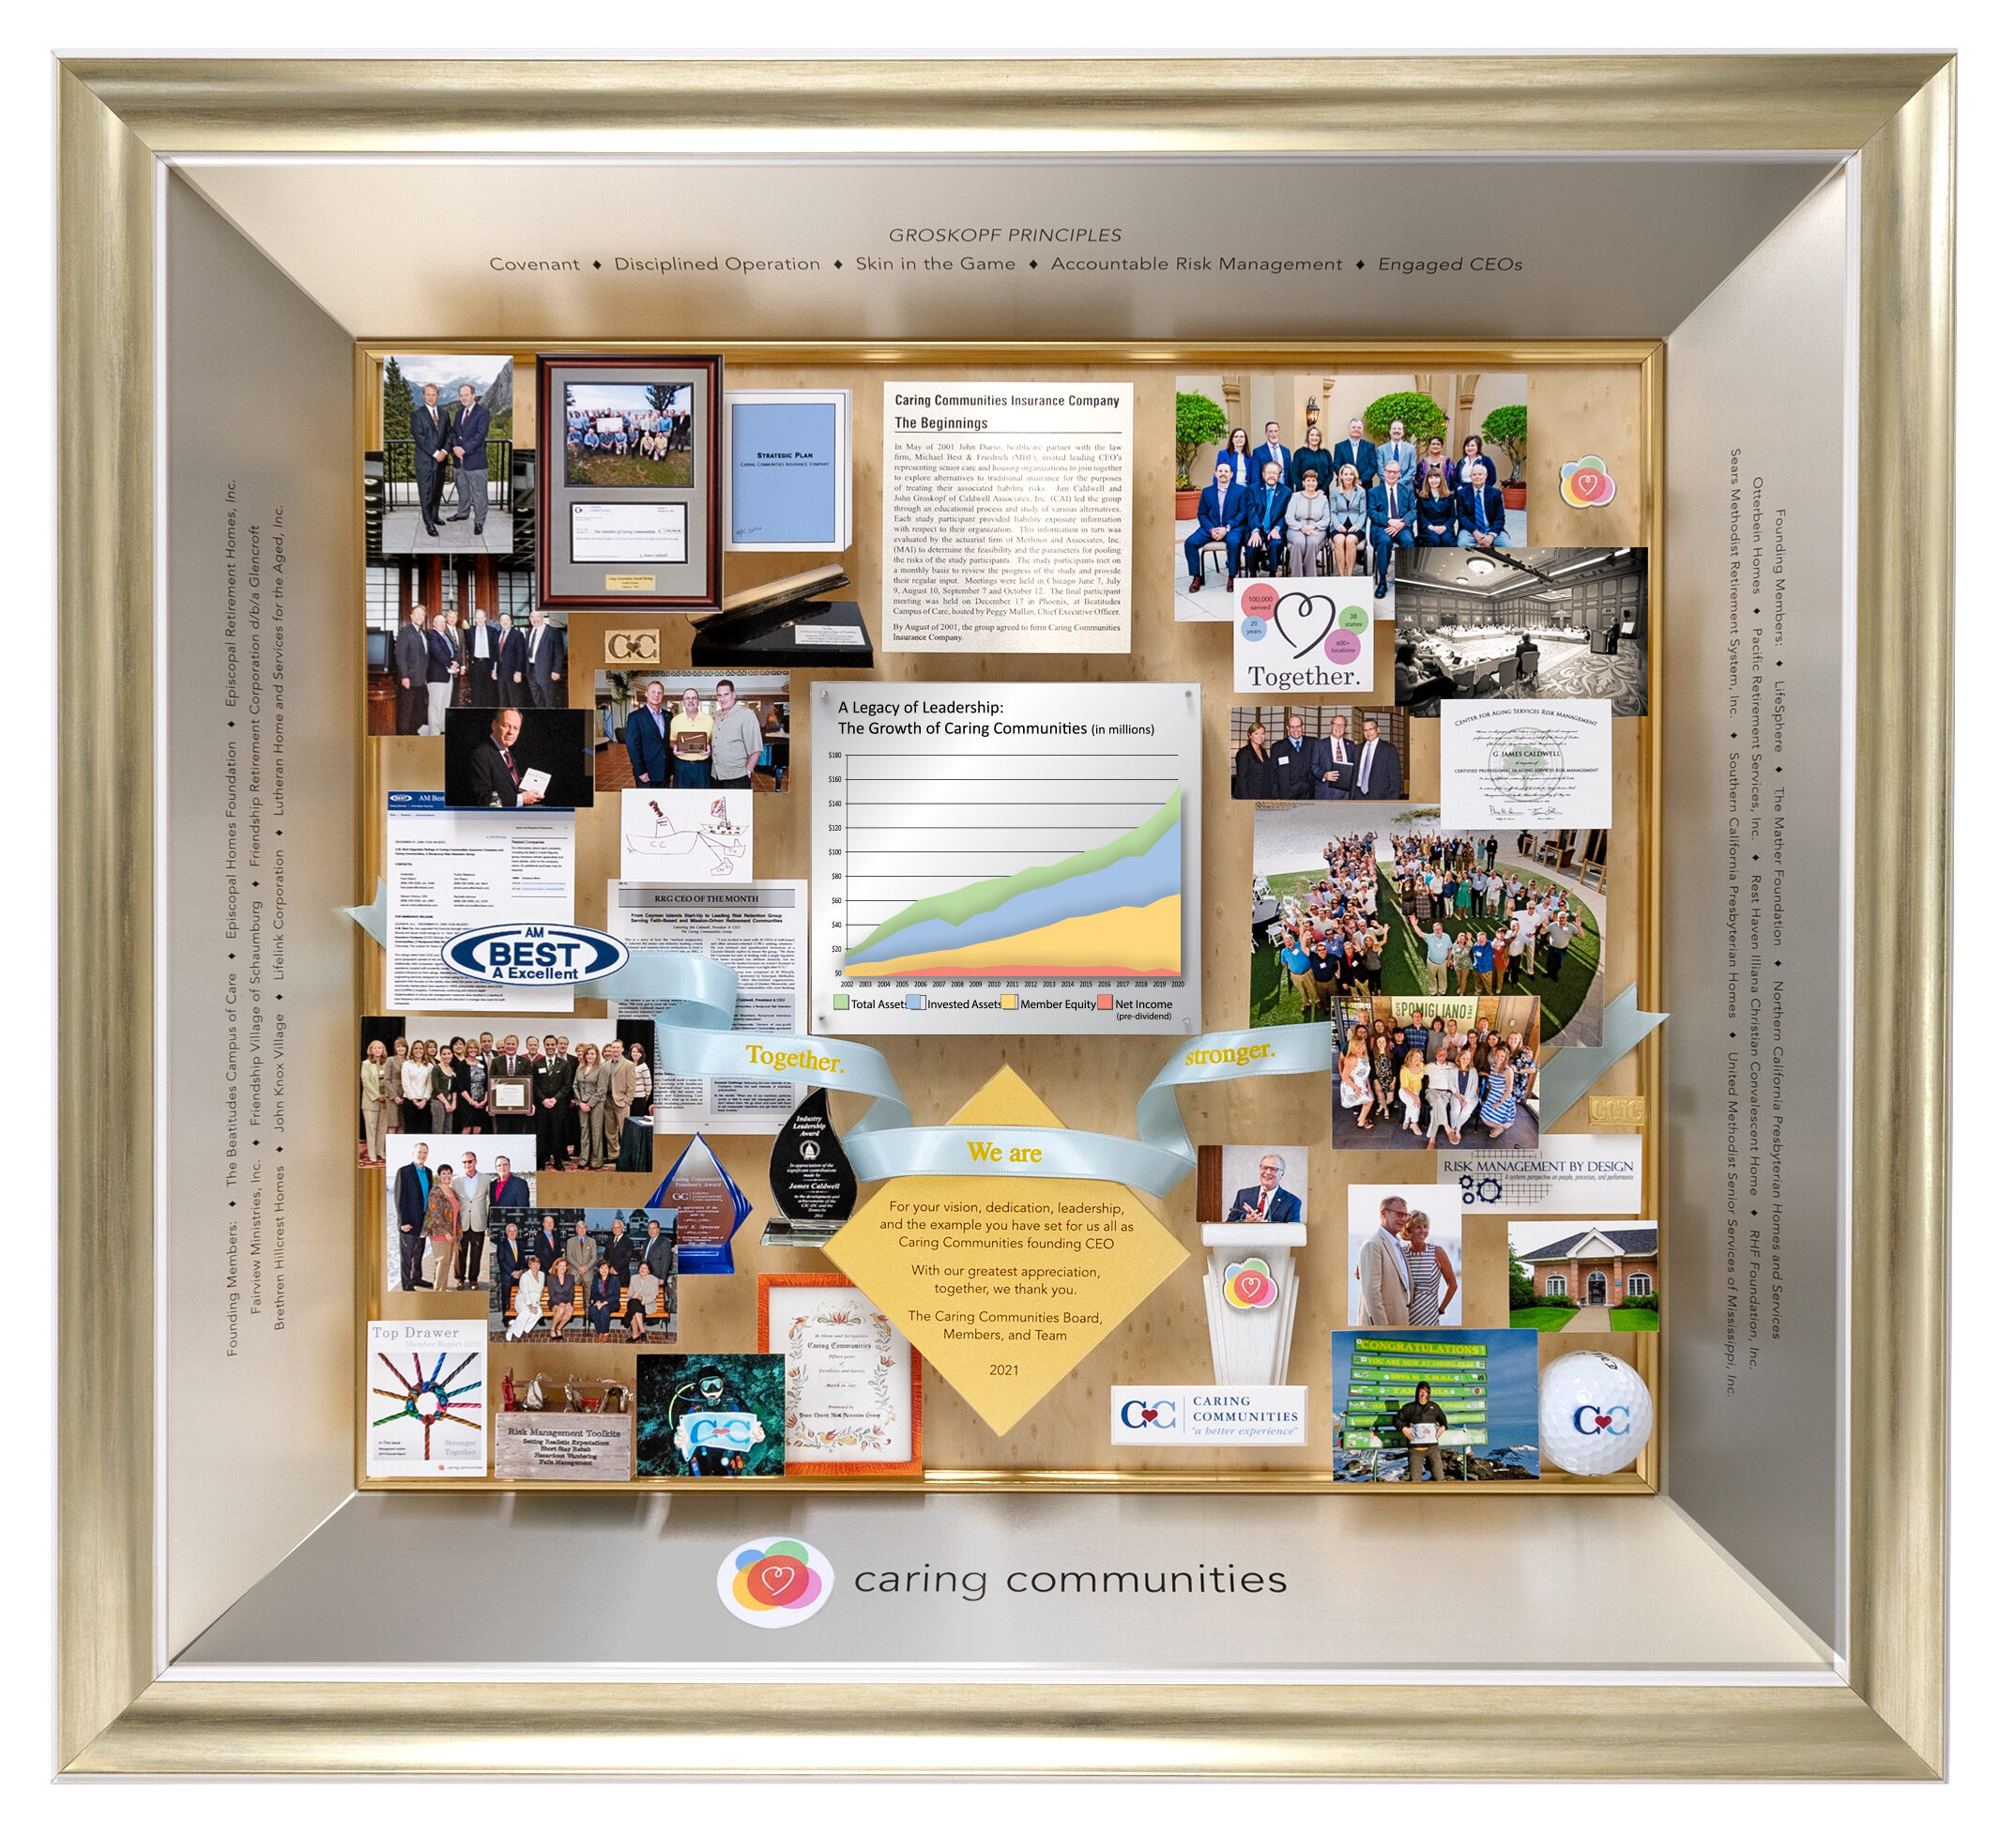 Large 3-dimensional collage personalized and custom-made for the founding CEO of a retirement company. 3D graph on plexiglass shows growth over 20 years.